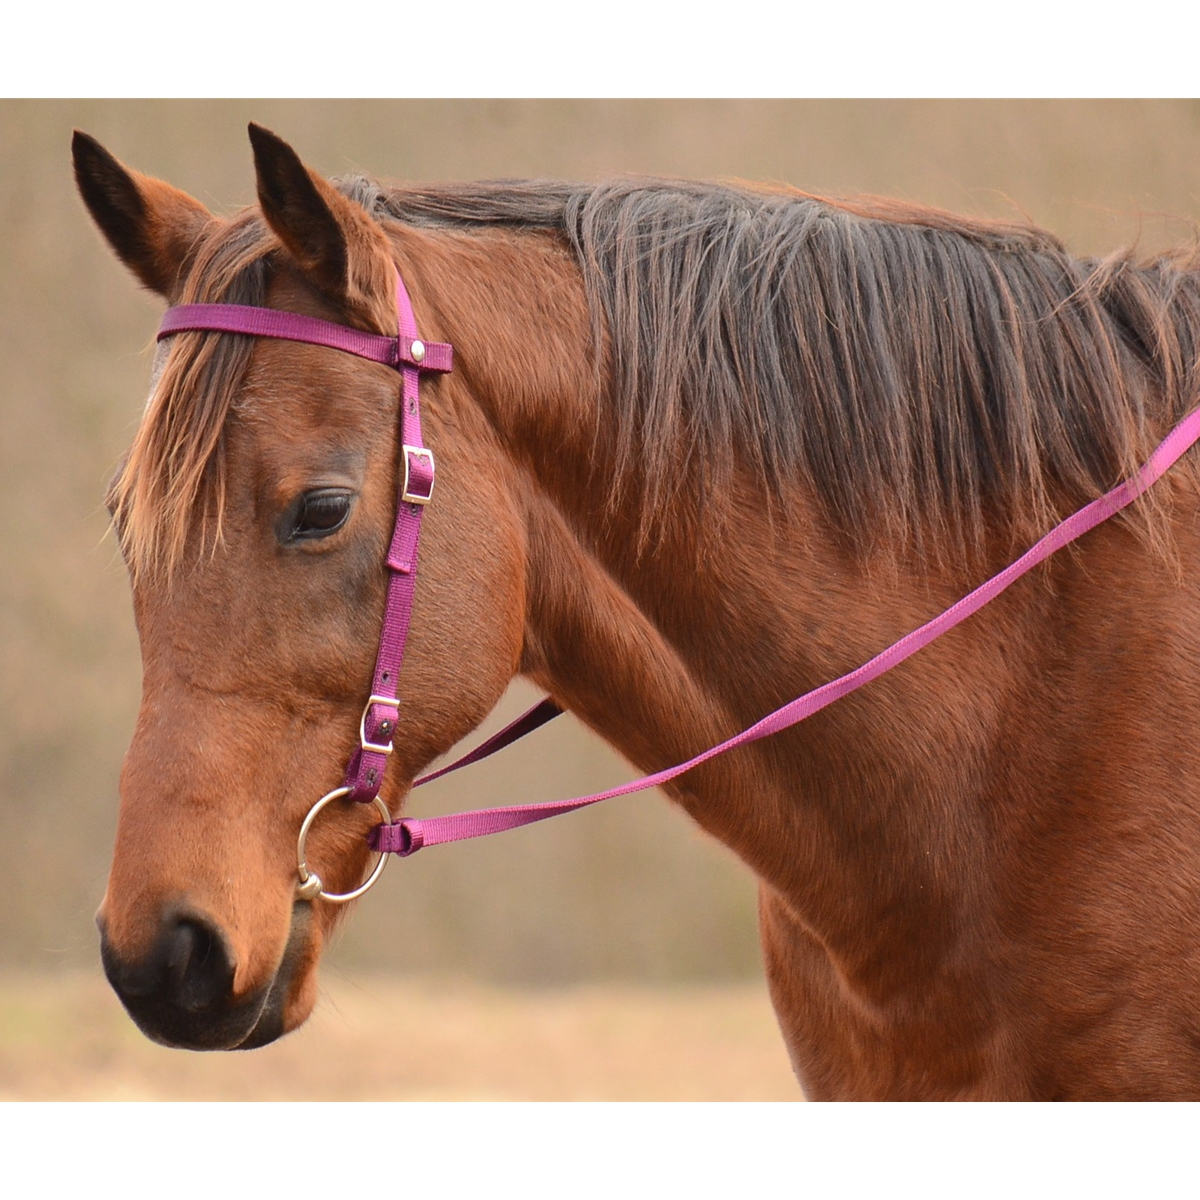 Shop Custom Western Horse Browbands Two Horse Tack